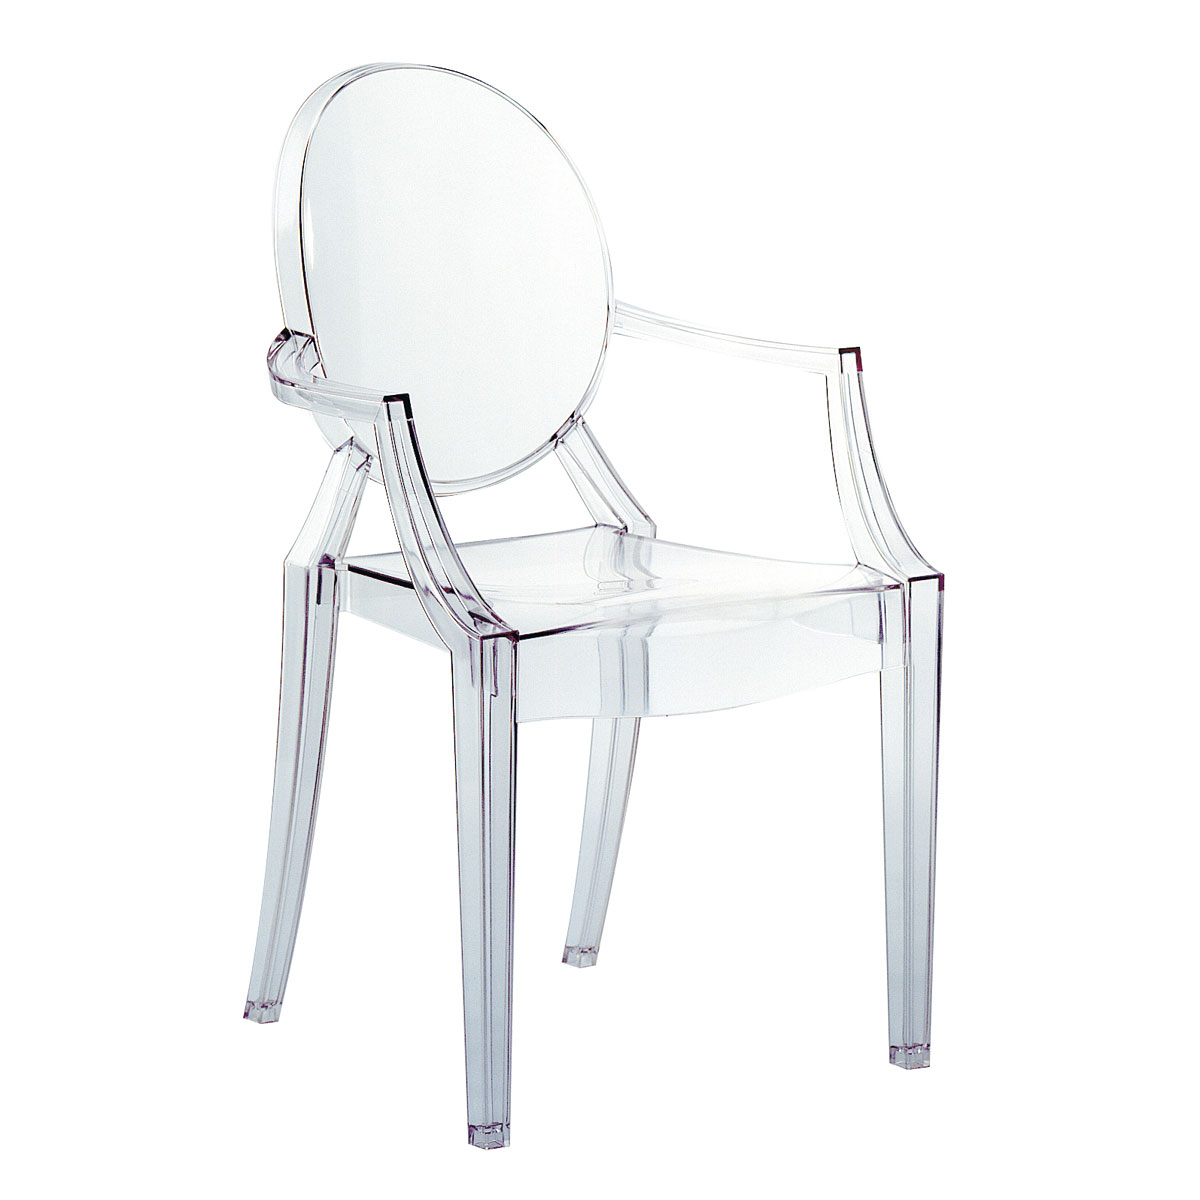 Louis Ghost chair (2 units packaging)